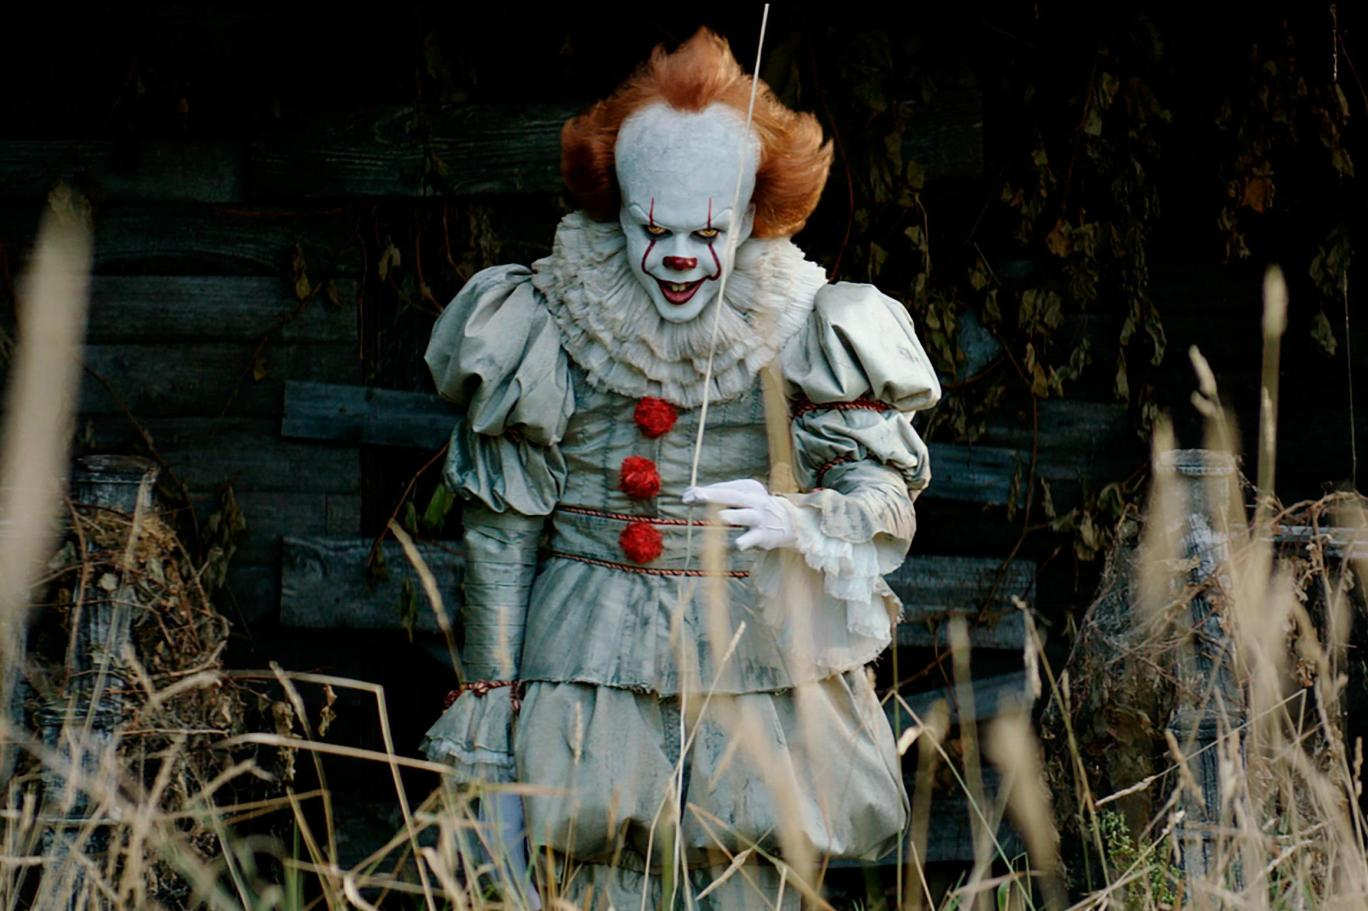 Want a Balloon? 'IT' Sequel Coming to Theaters September 2019